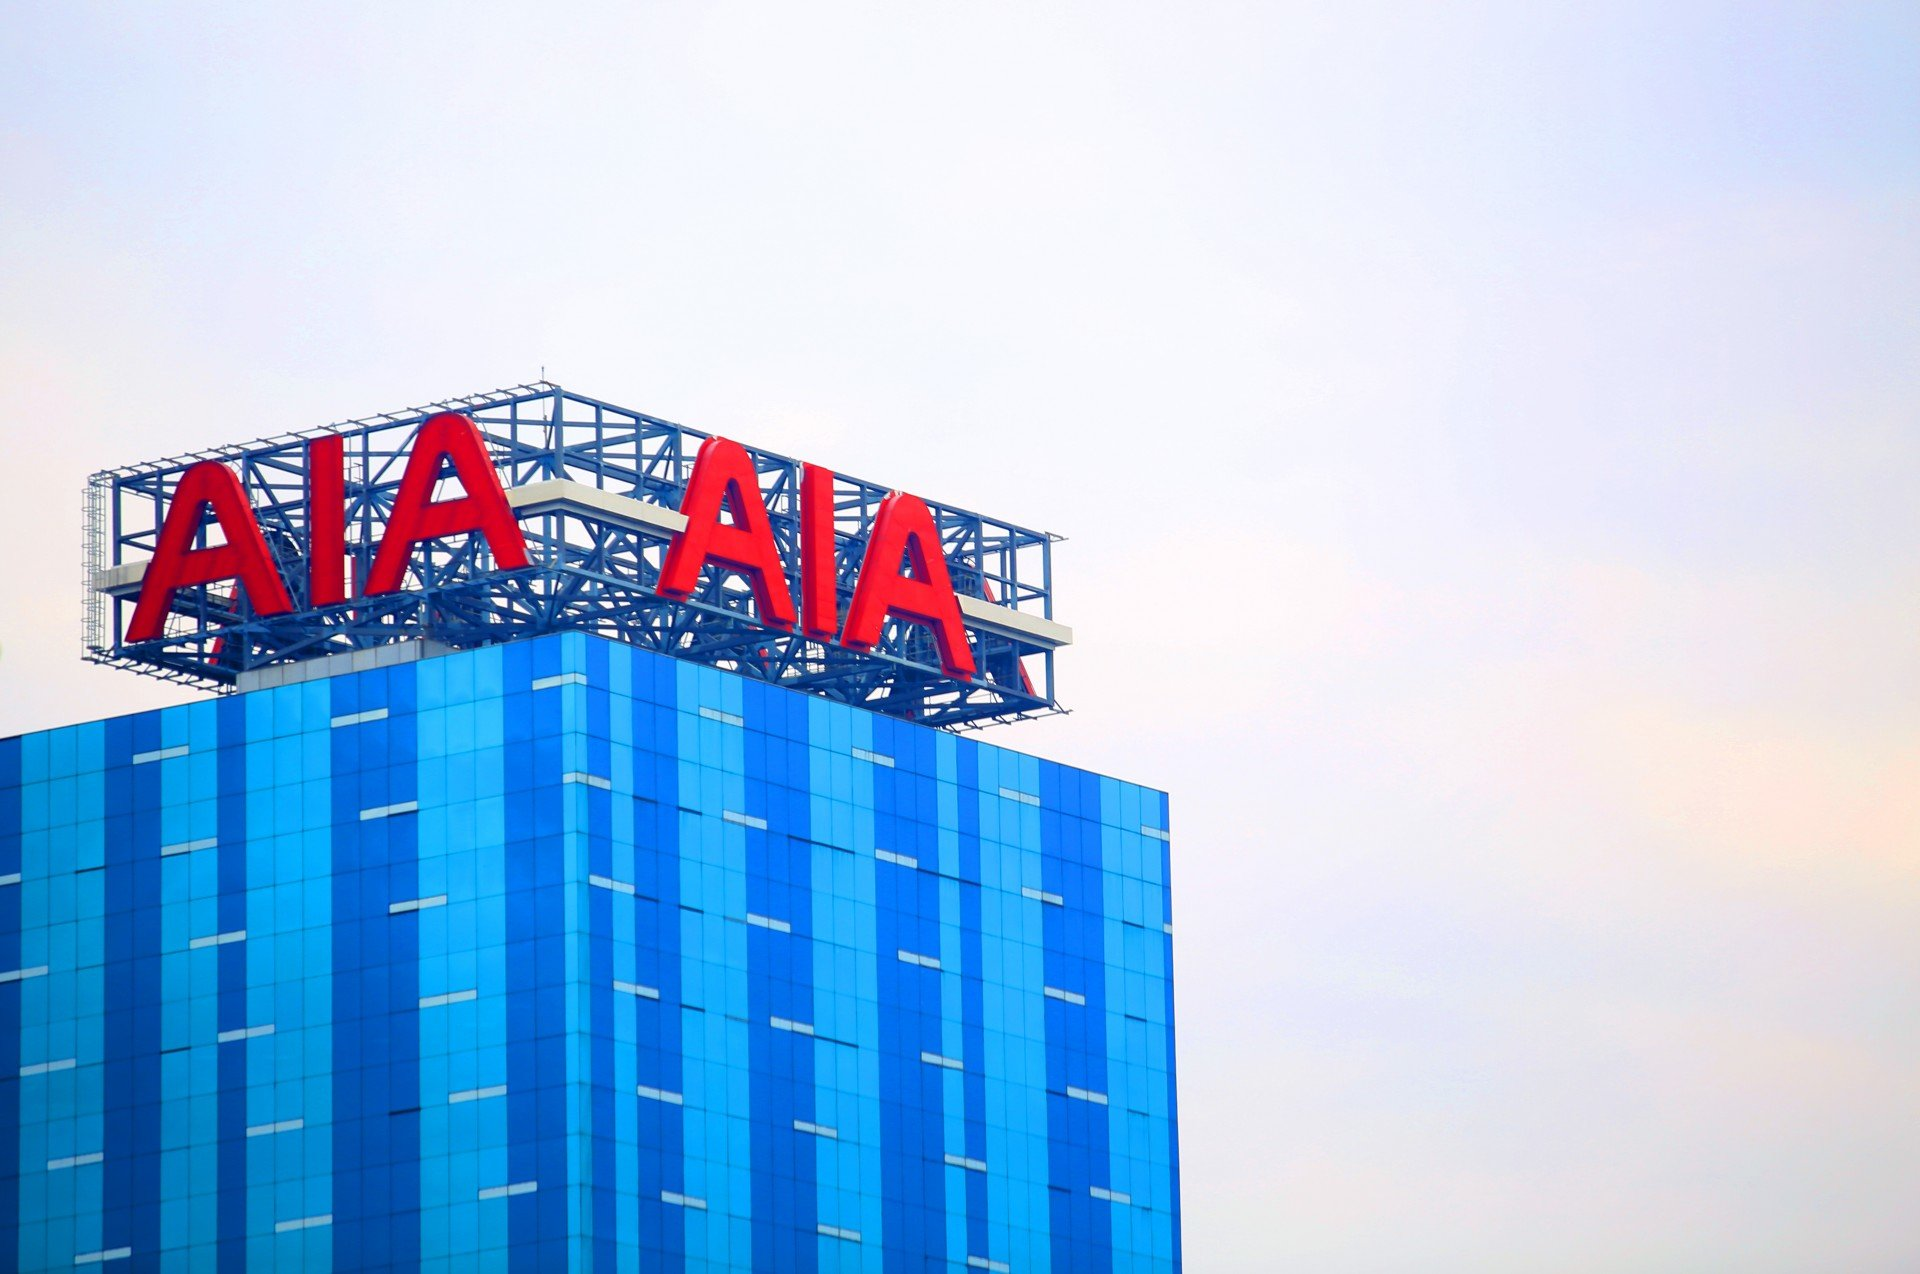 AIA Thailand, a unit of Hong Kong-based insurer AIA Group Ltd, has set up an investment management subsidiary with 847 billion baht (US$27.30 billion) of assets.